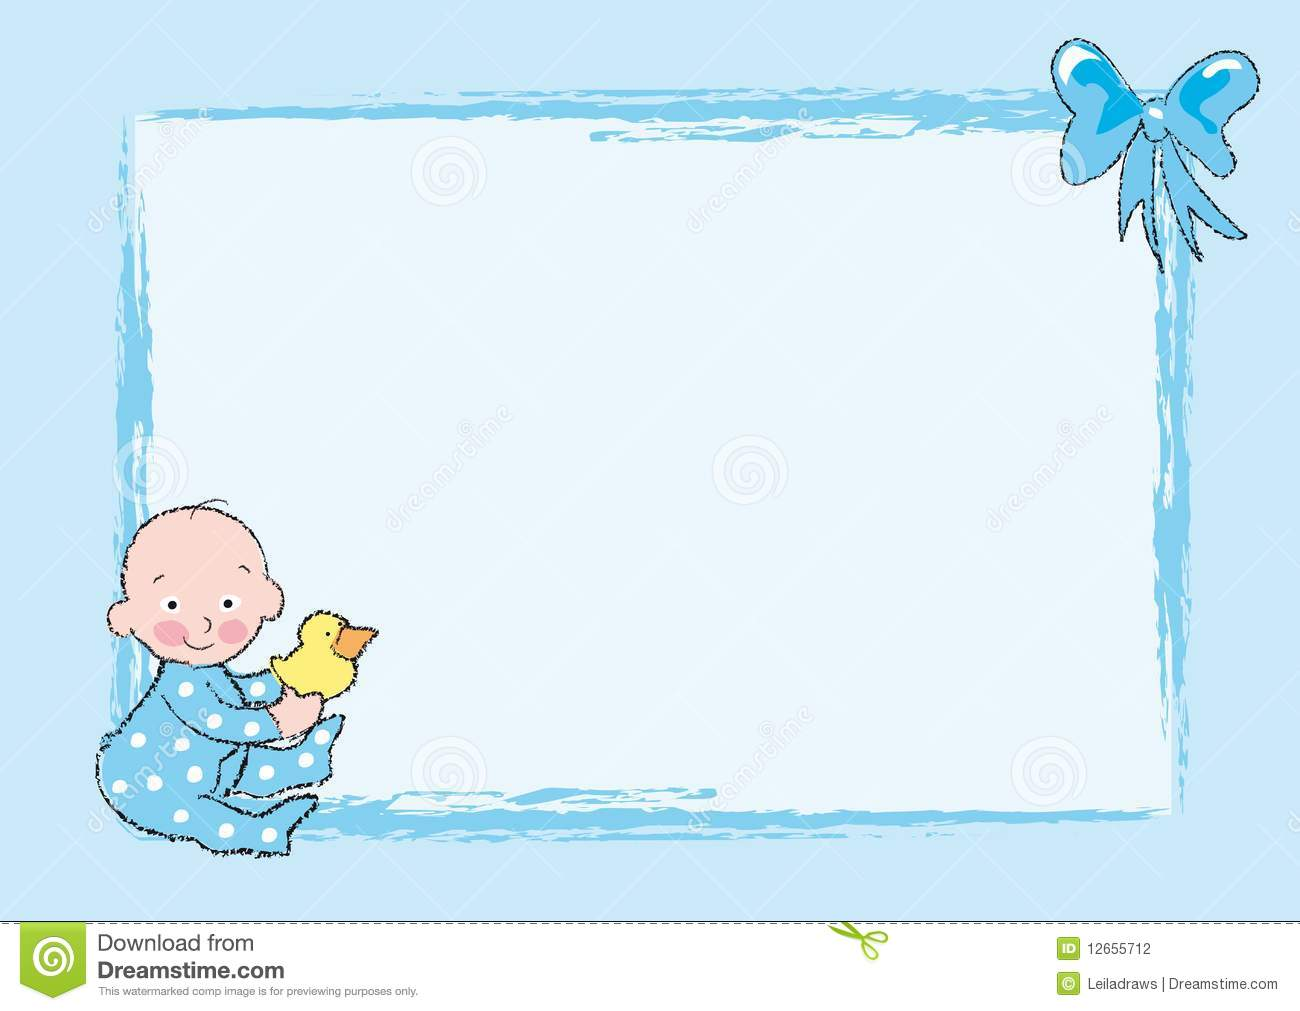 22+] Baby Boy Wallpaper Borders on WallpaperSafari.